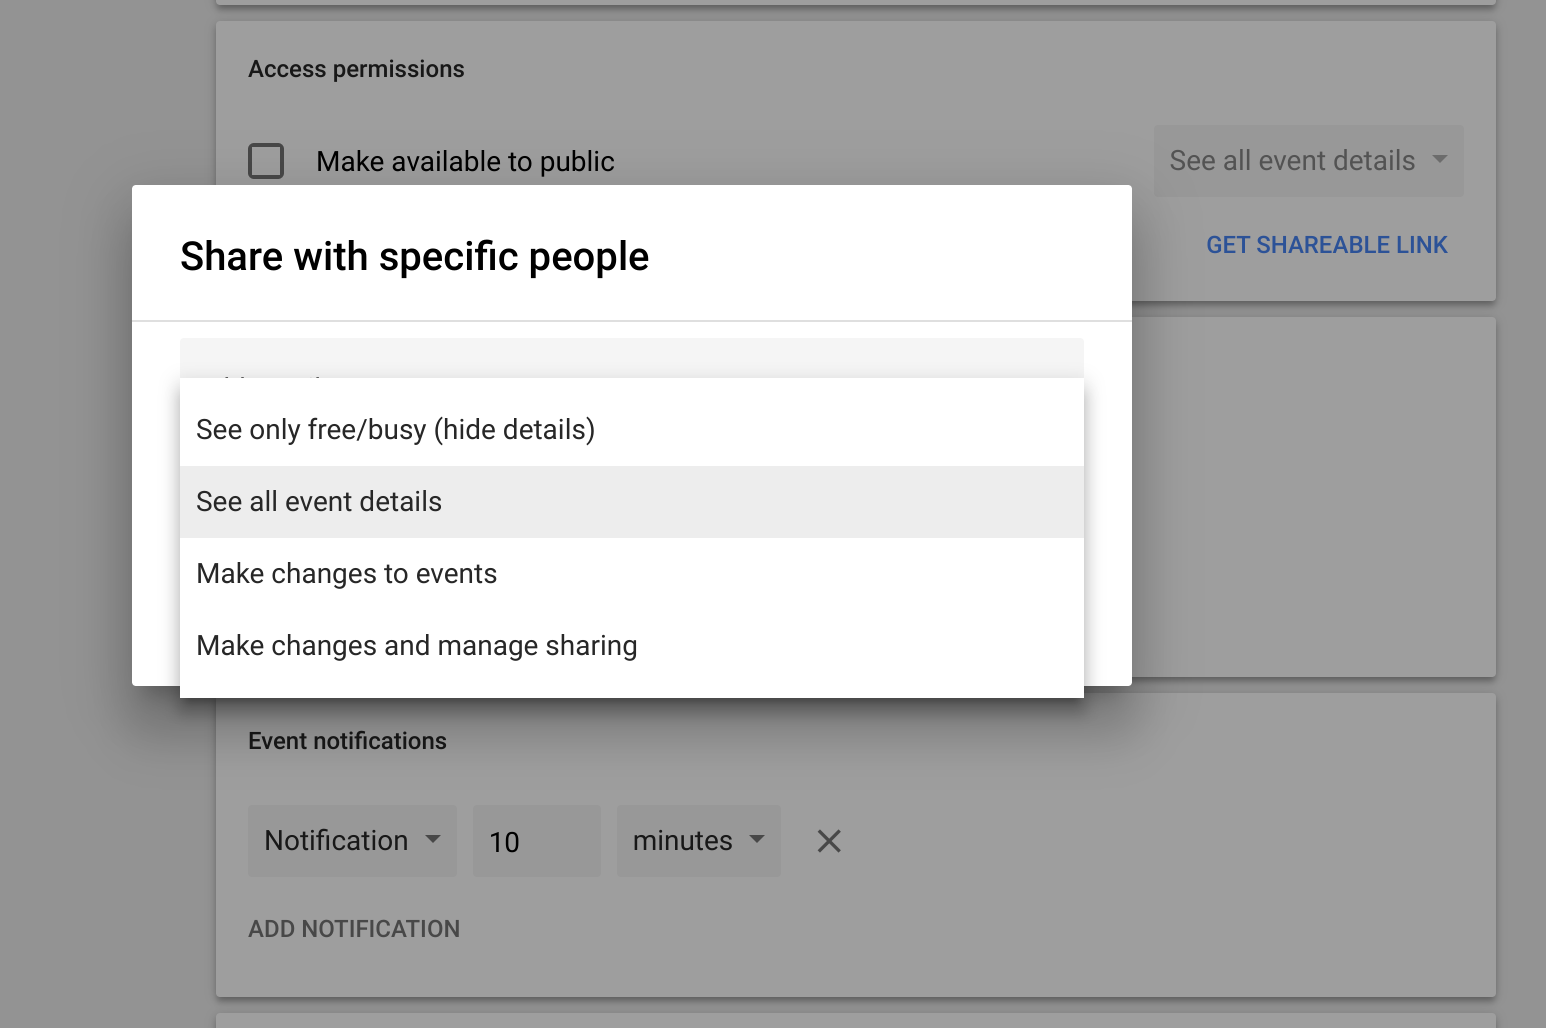 you might be sharing private events on google calendar without